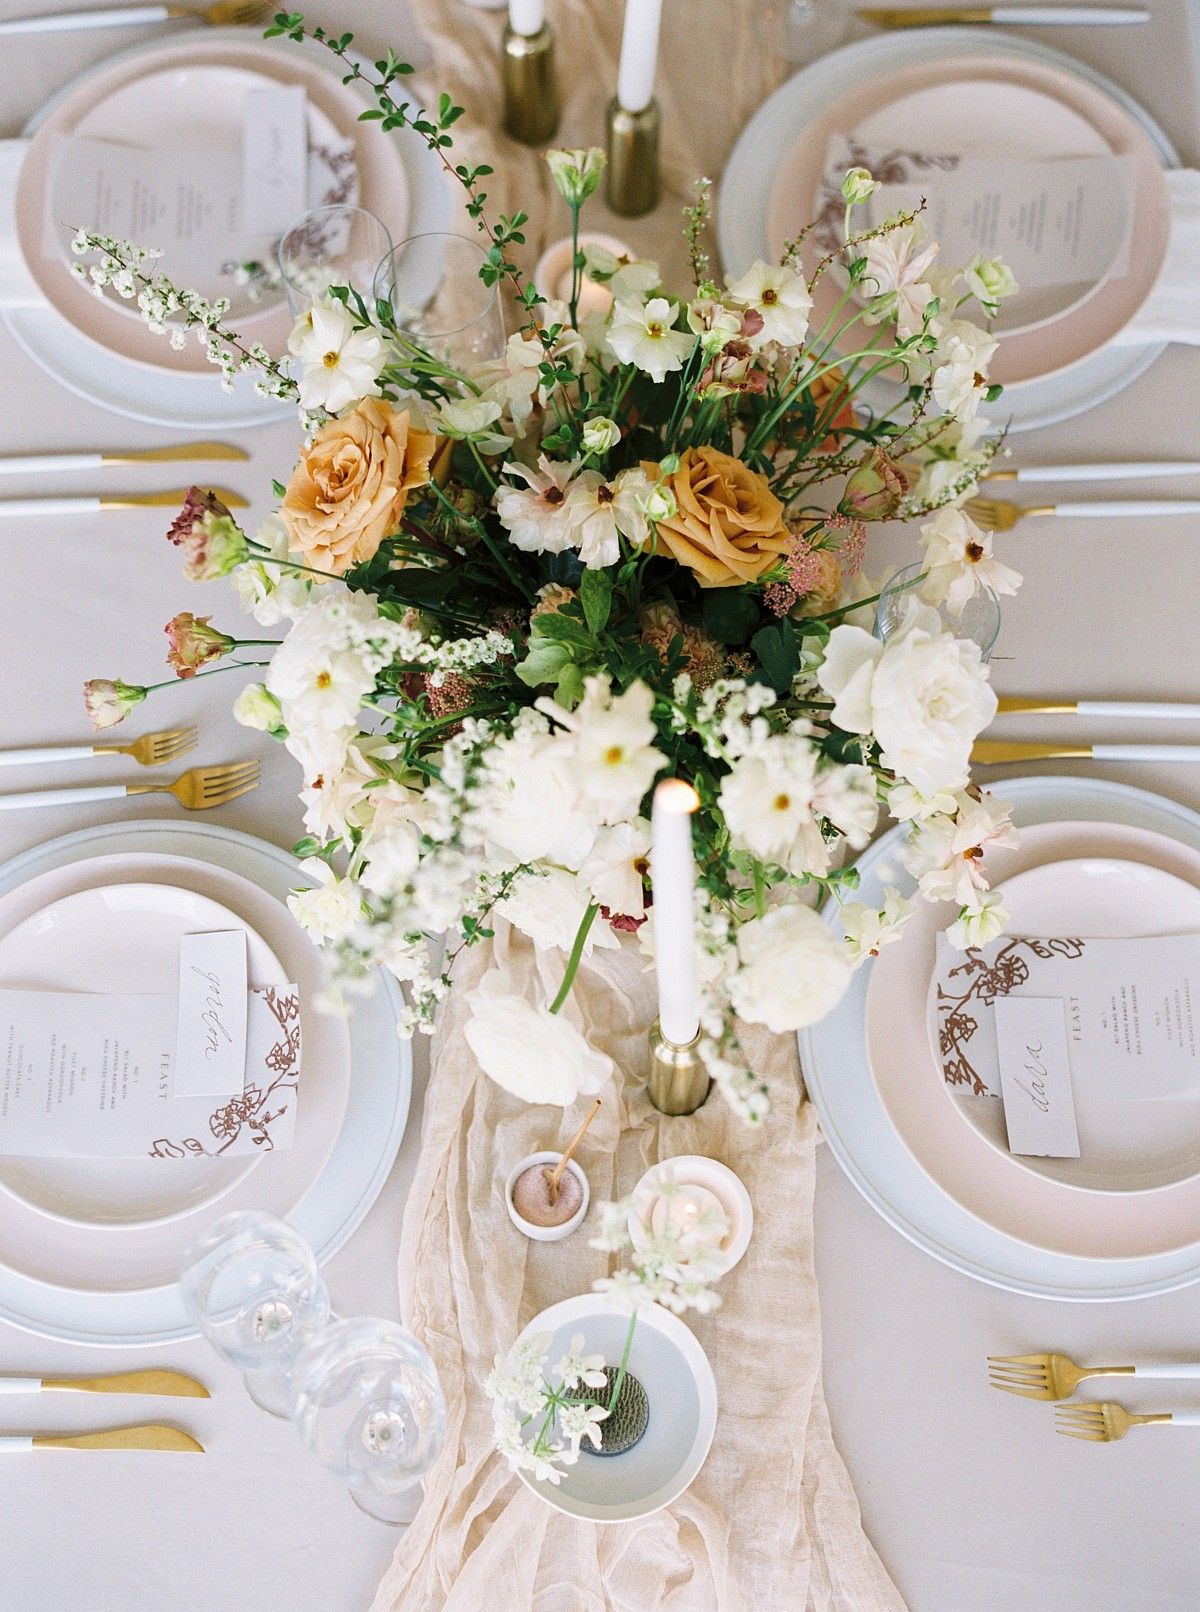 Feminine yet modern wedding ideas from The Hybrid Atelier